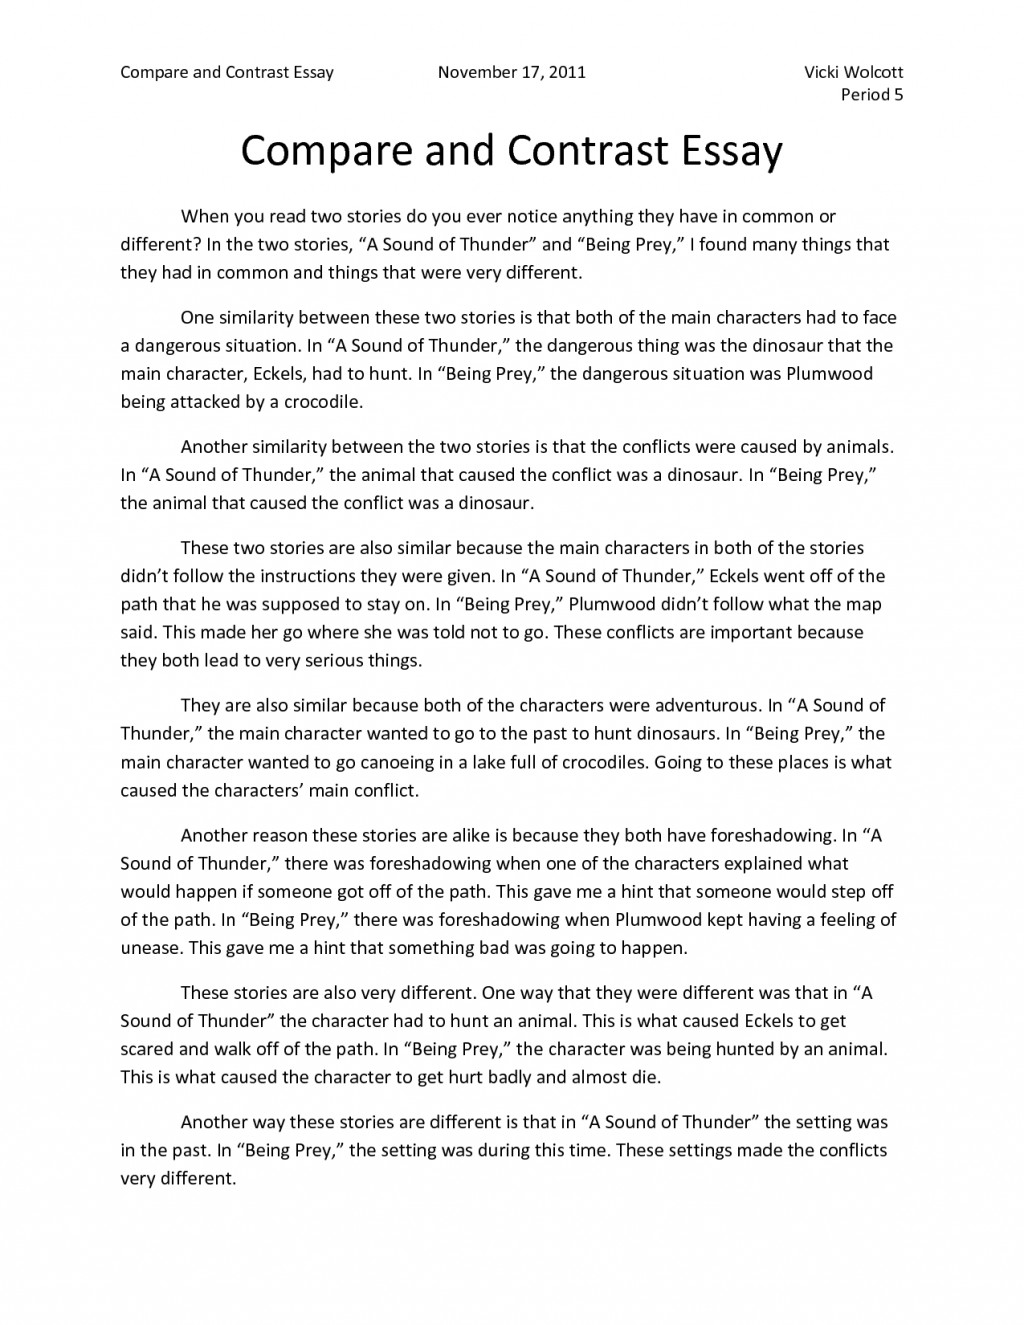 006 Compare And Contrastssay Template Gallery Drawing Art Throughout Collegexamples Introduction Question Scholarship Freedexcel Conclusionxtended Exceptional Contrast Essay For Middle School 8th Grade Examples Large